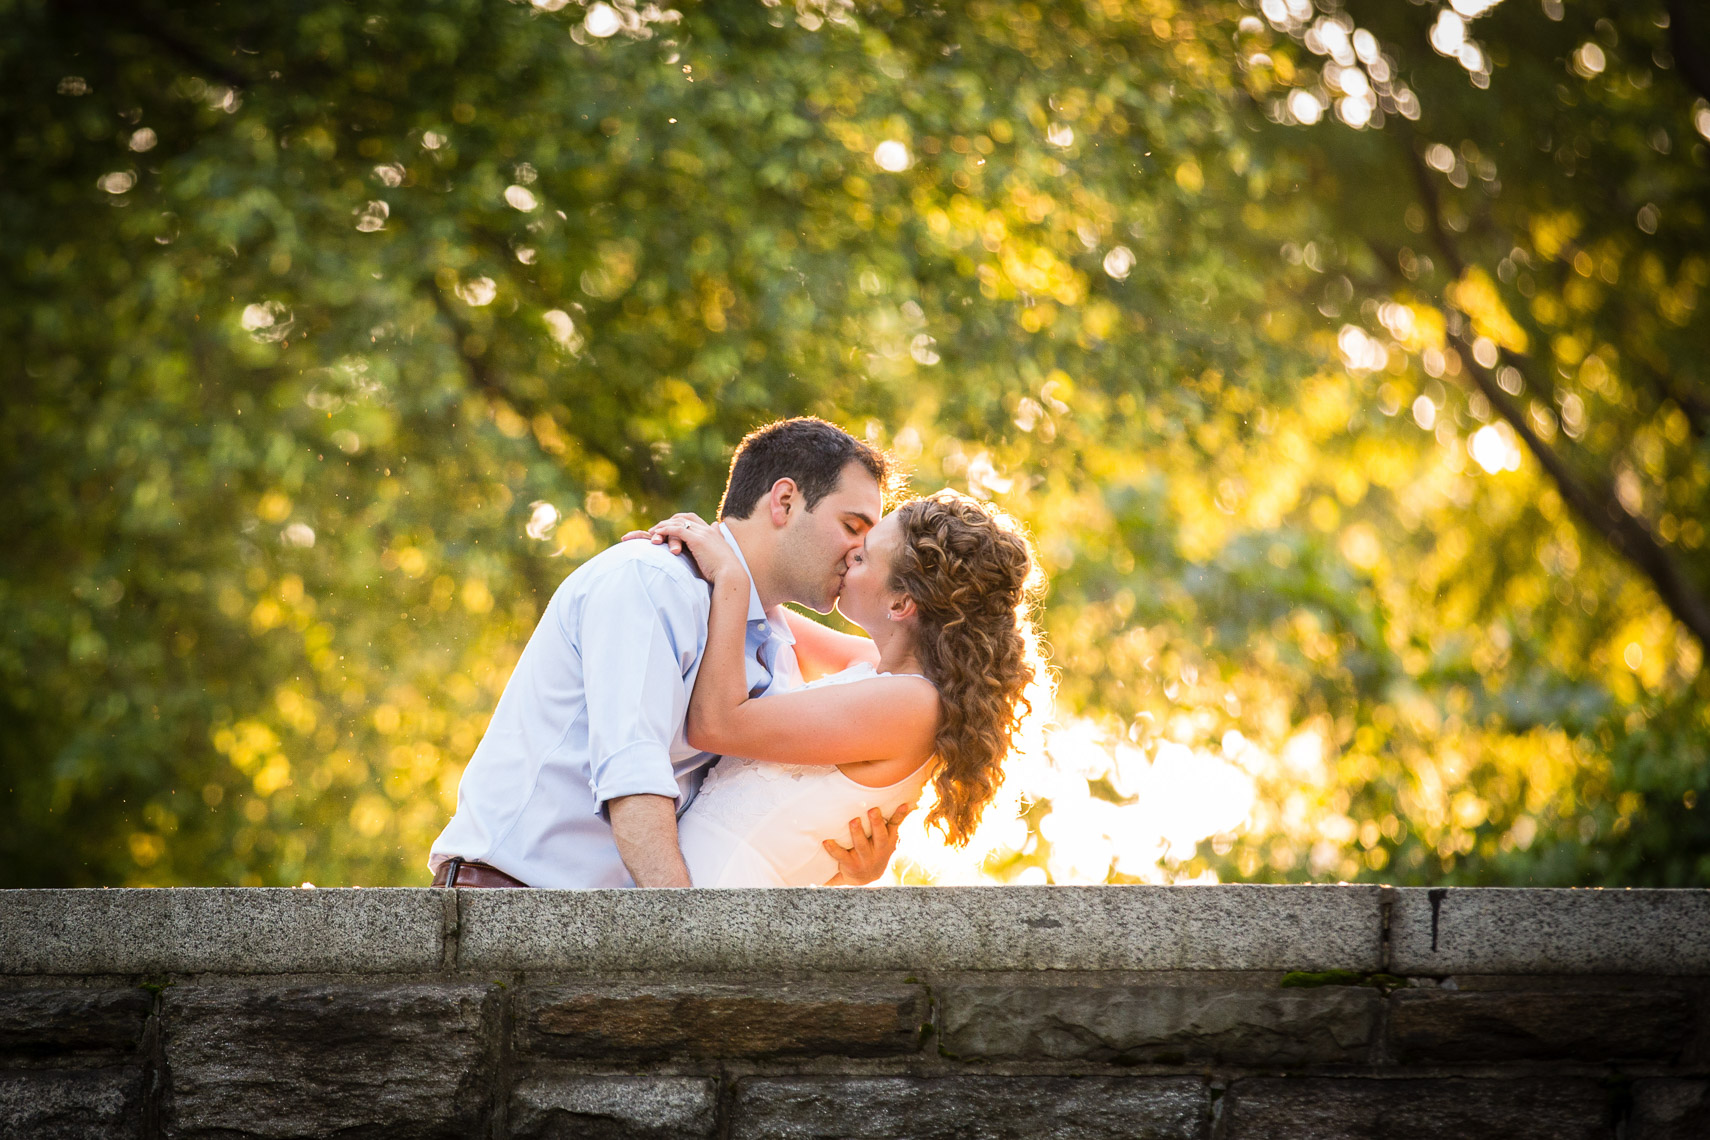 Kathi-Littwin-Photography-Engagement-Photos-4157